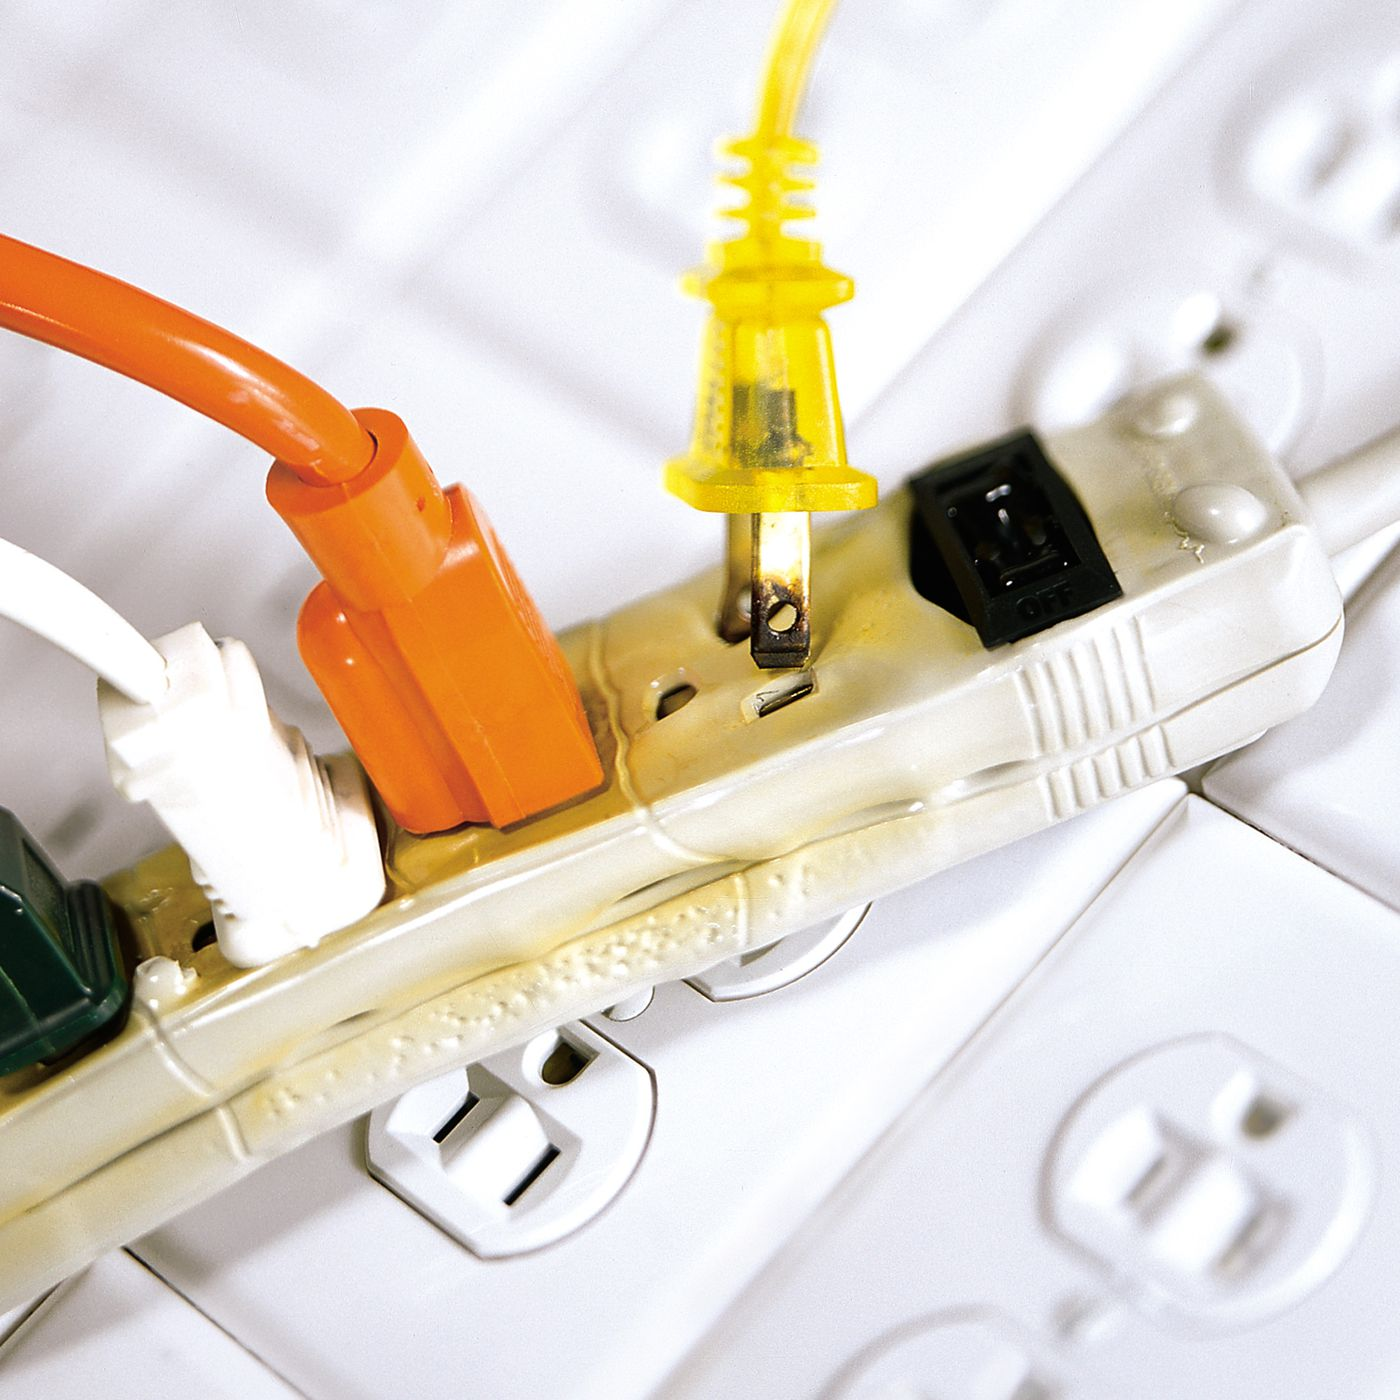 Best Whole House Surge Protector 2021 Whole House Surge Protectors: What You Need to Know   This Old House